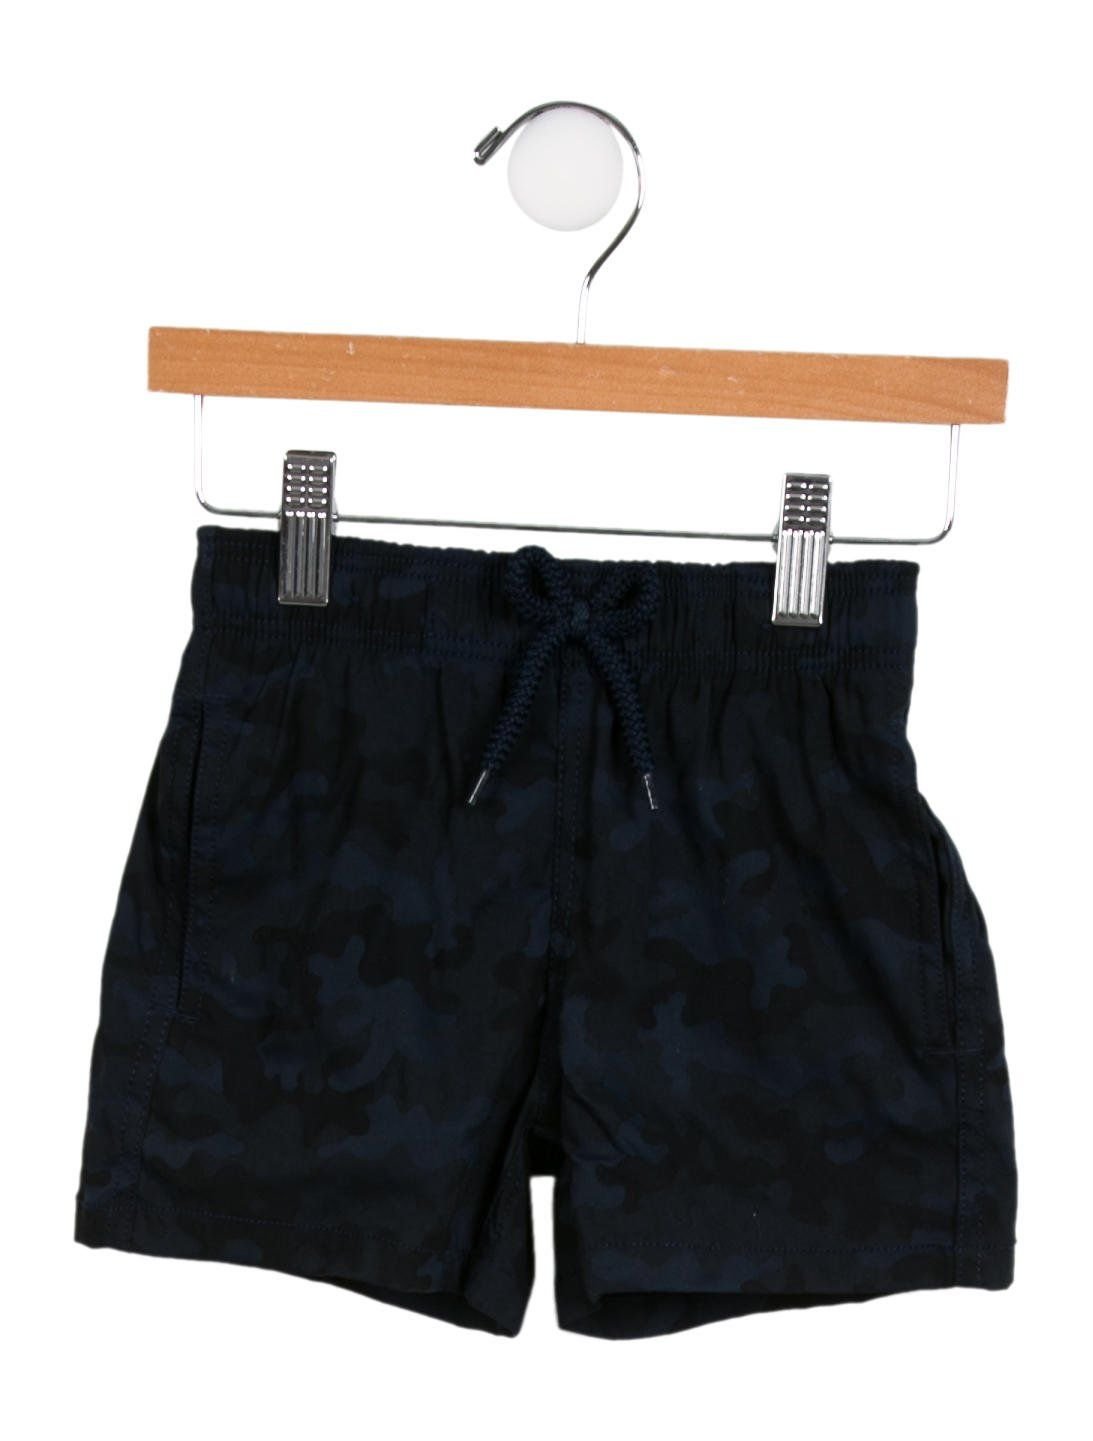 62b659275b Boys' black and multicolor Vilebrequin Kids camouflage swim trunks with  elasticized waist, dual seam pockets at sides, single flap pocket at back  and draw